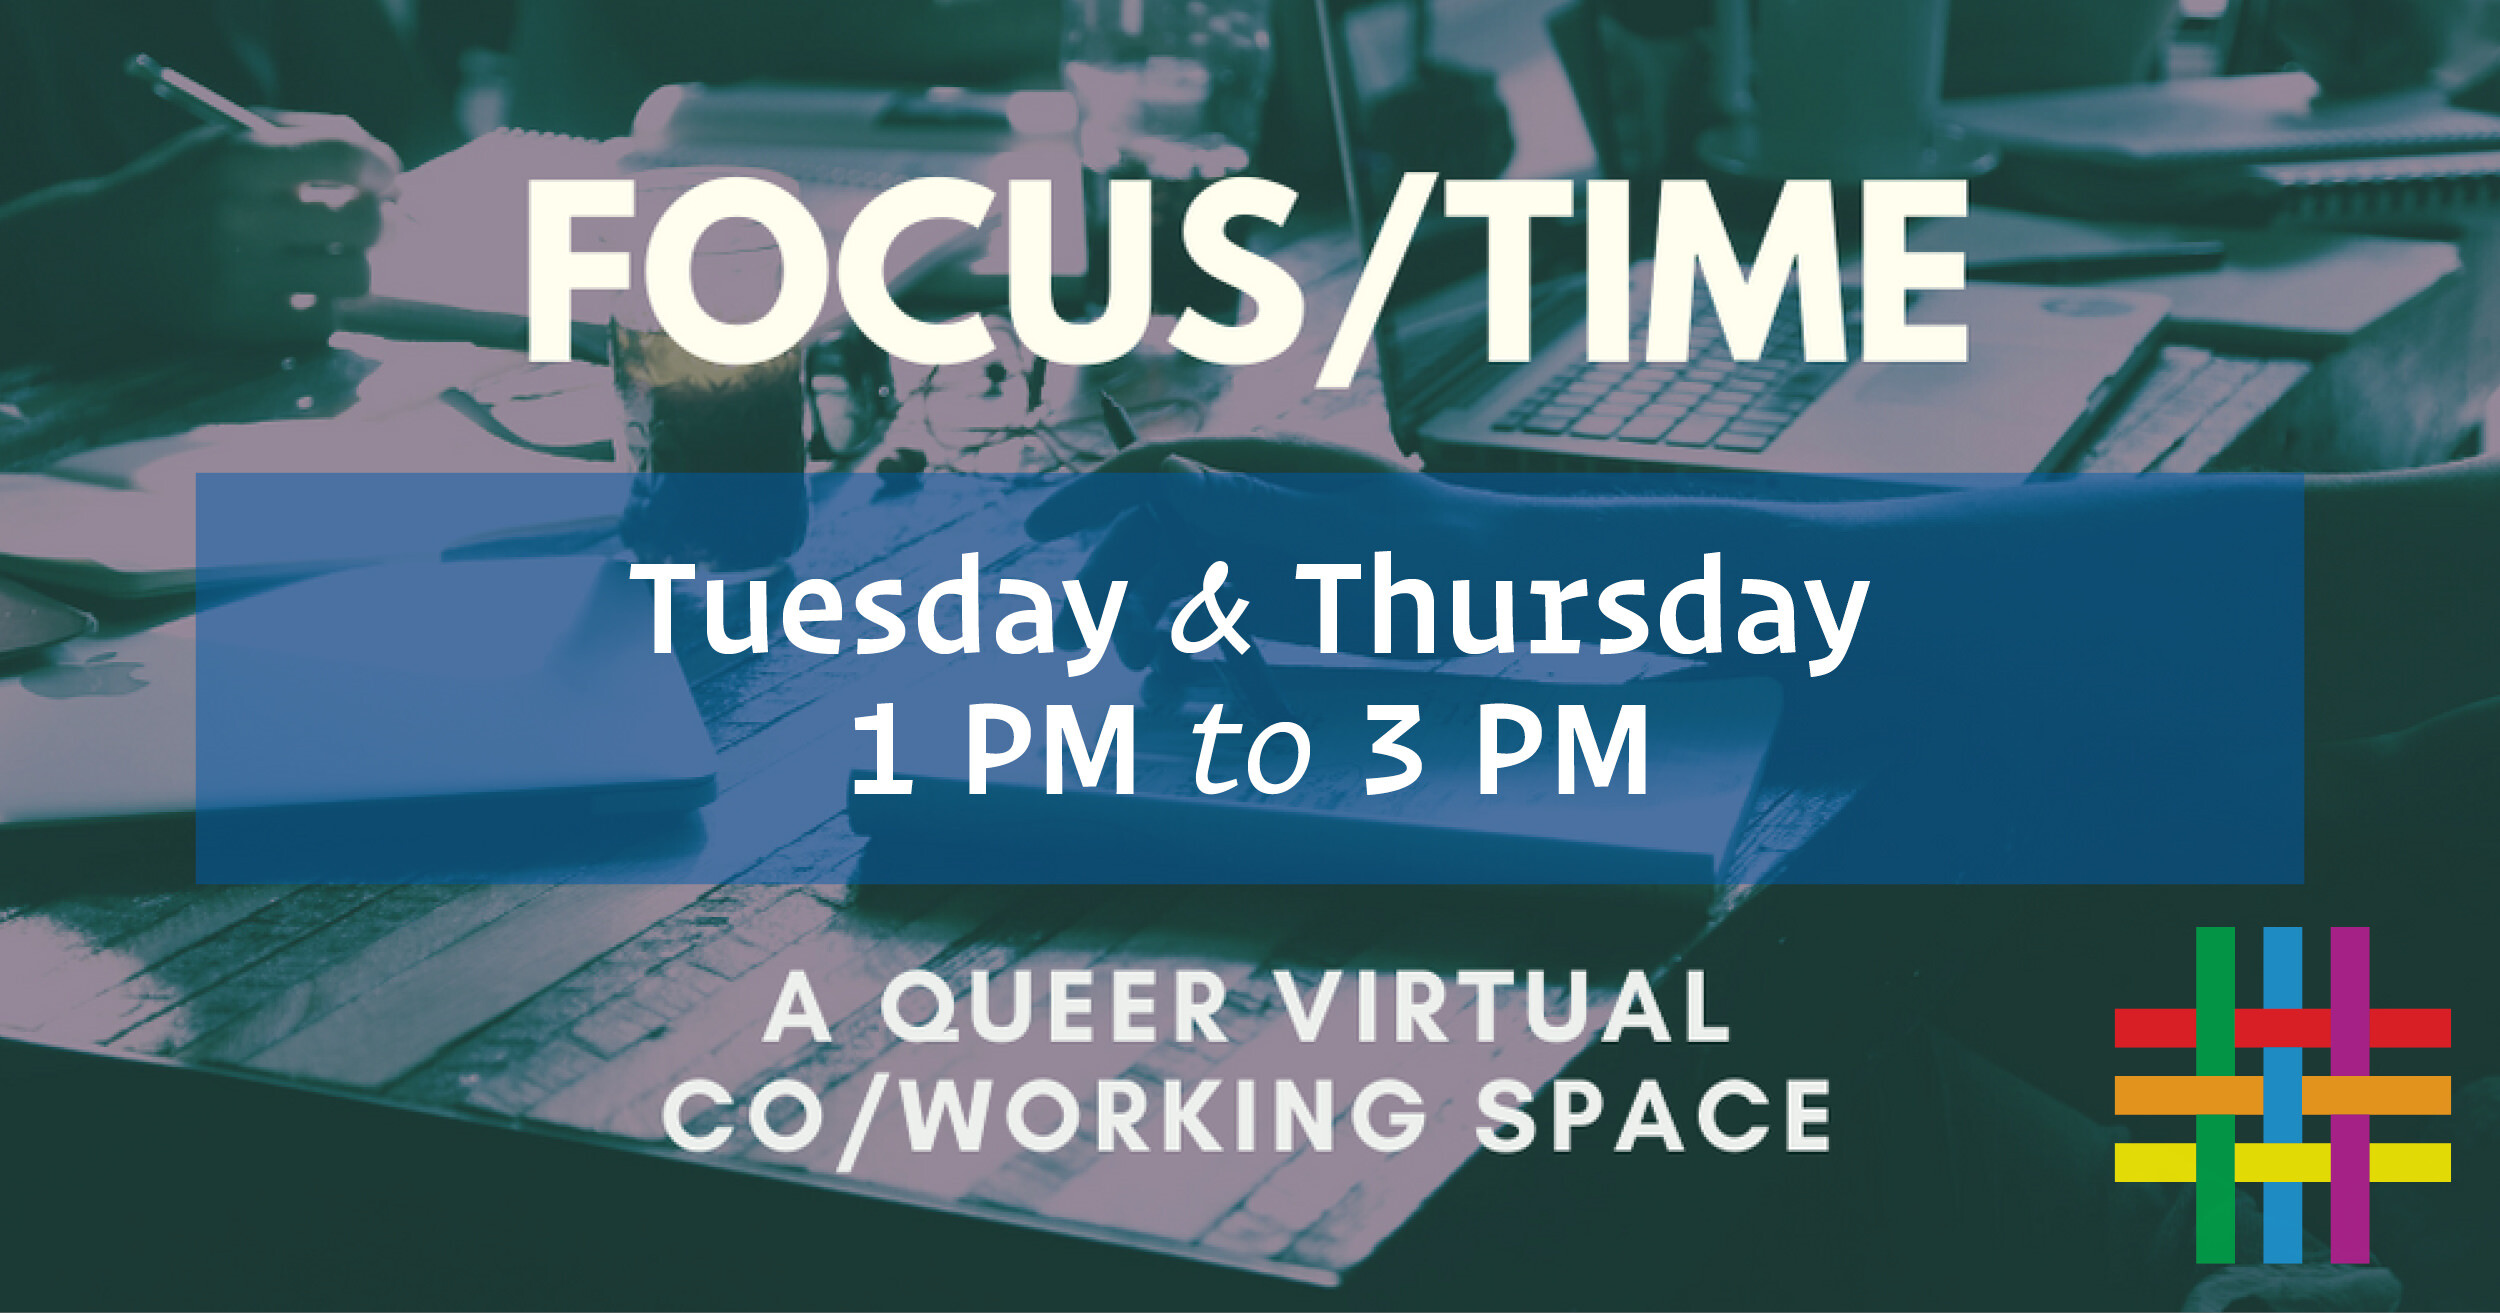 Focus/Time: A Queer Virtual CoWorking Space